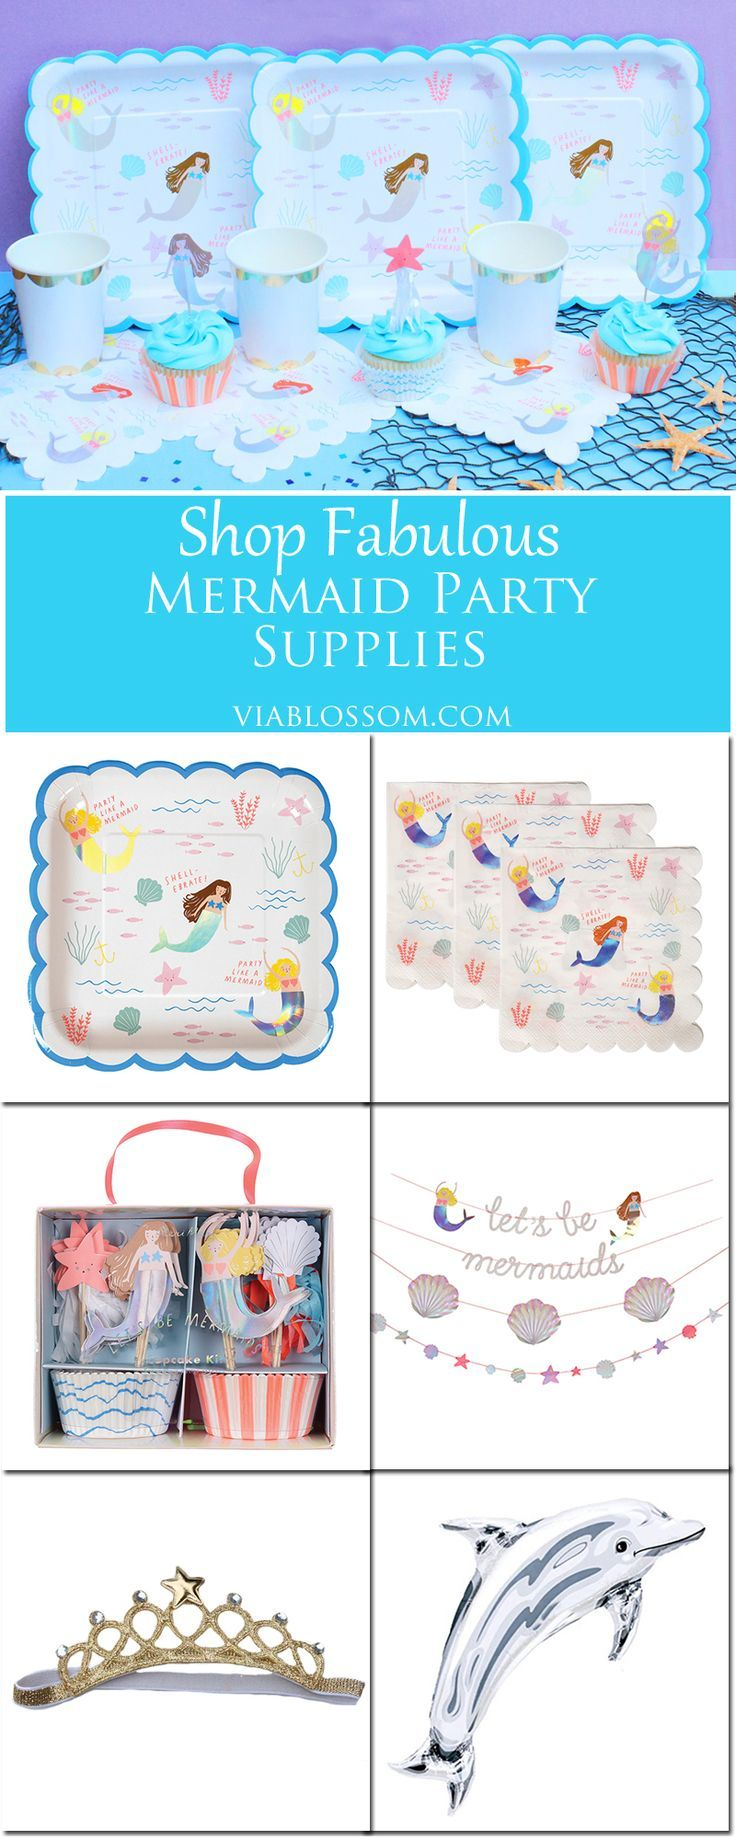 Fabulous Mermaid Party Supplies for an Under the Sea Party!